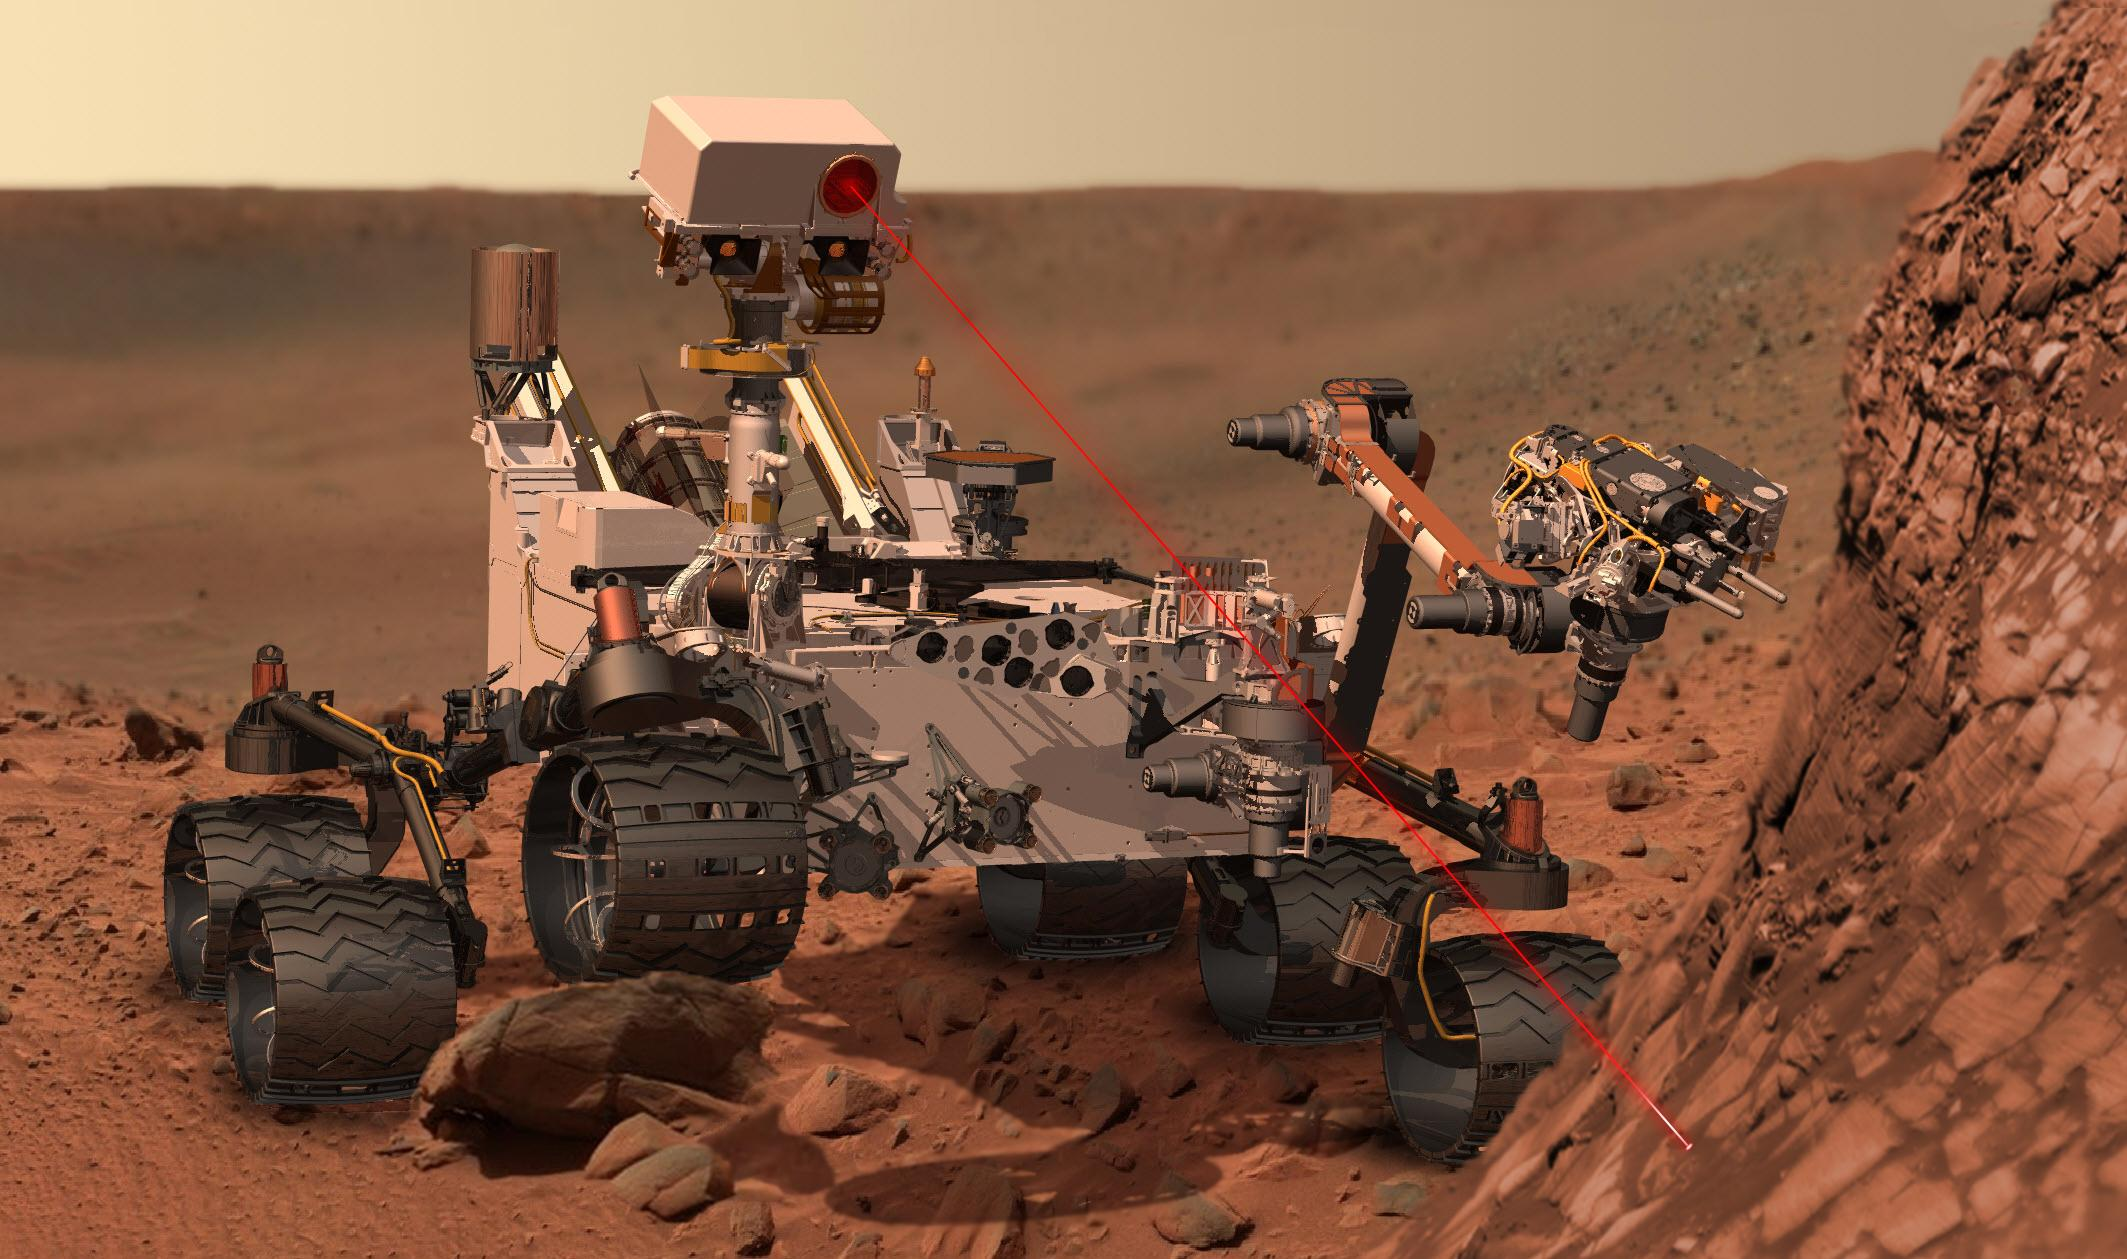 Martian rover Curiosity using ChemCam Msl20111115 PIA14760 MSL PIcture 3 br2